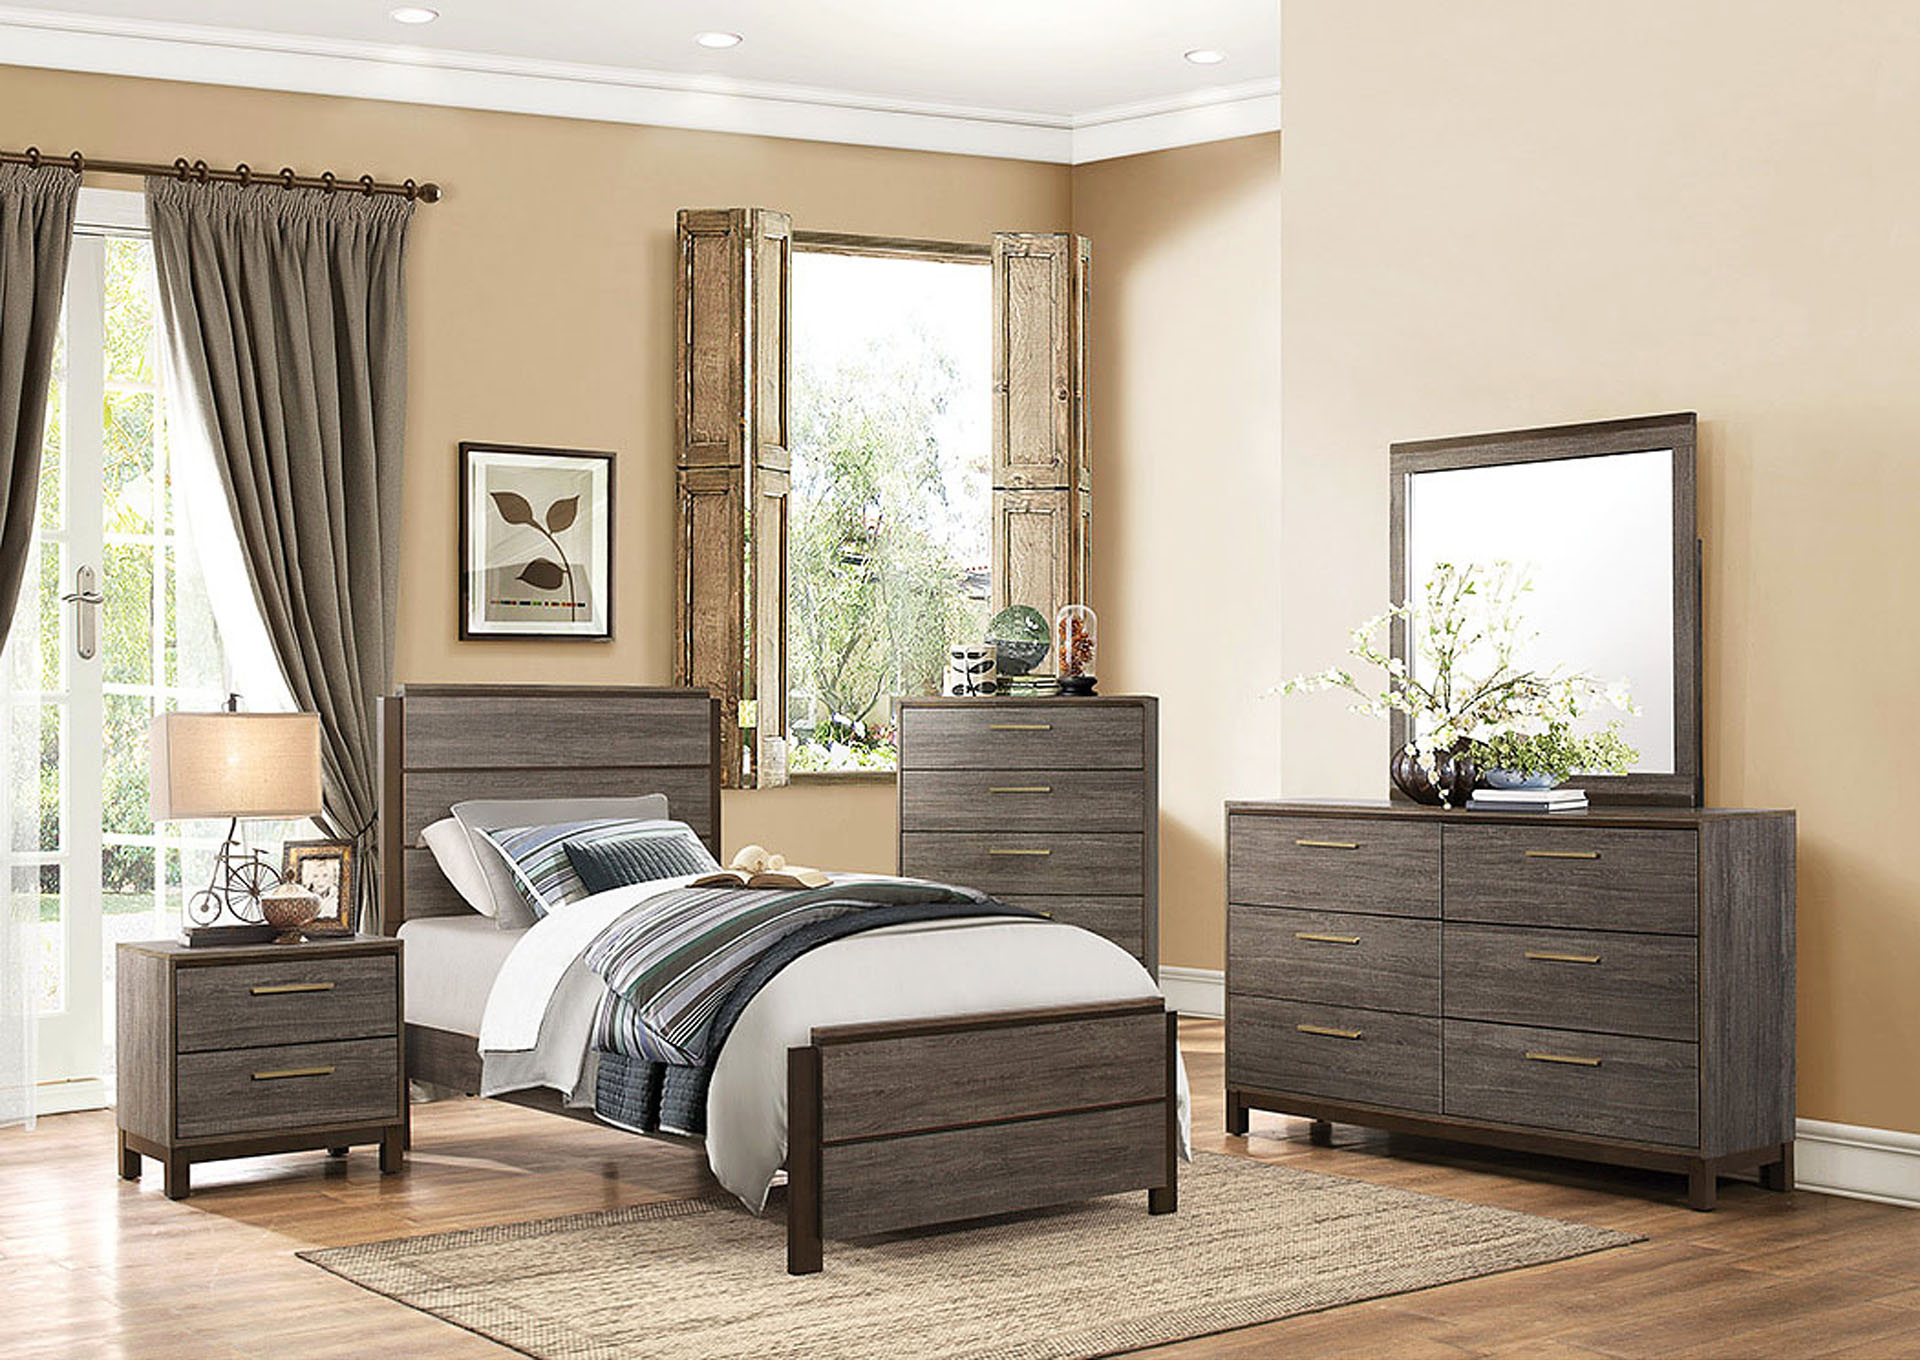 Twin Bed,Homelegance